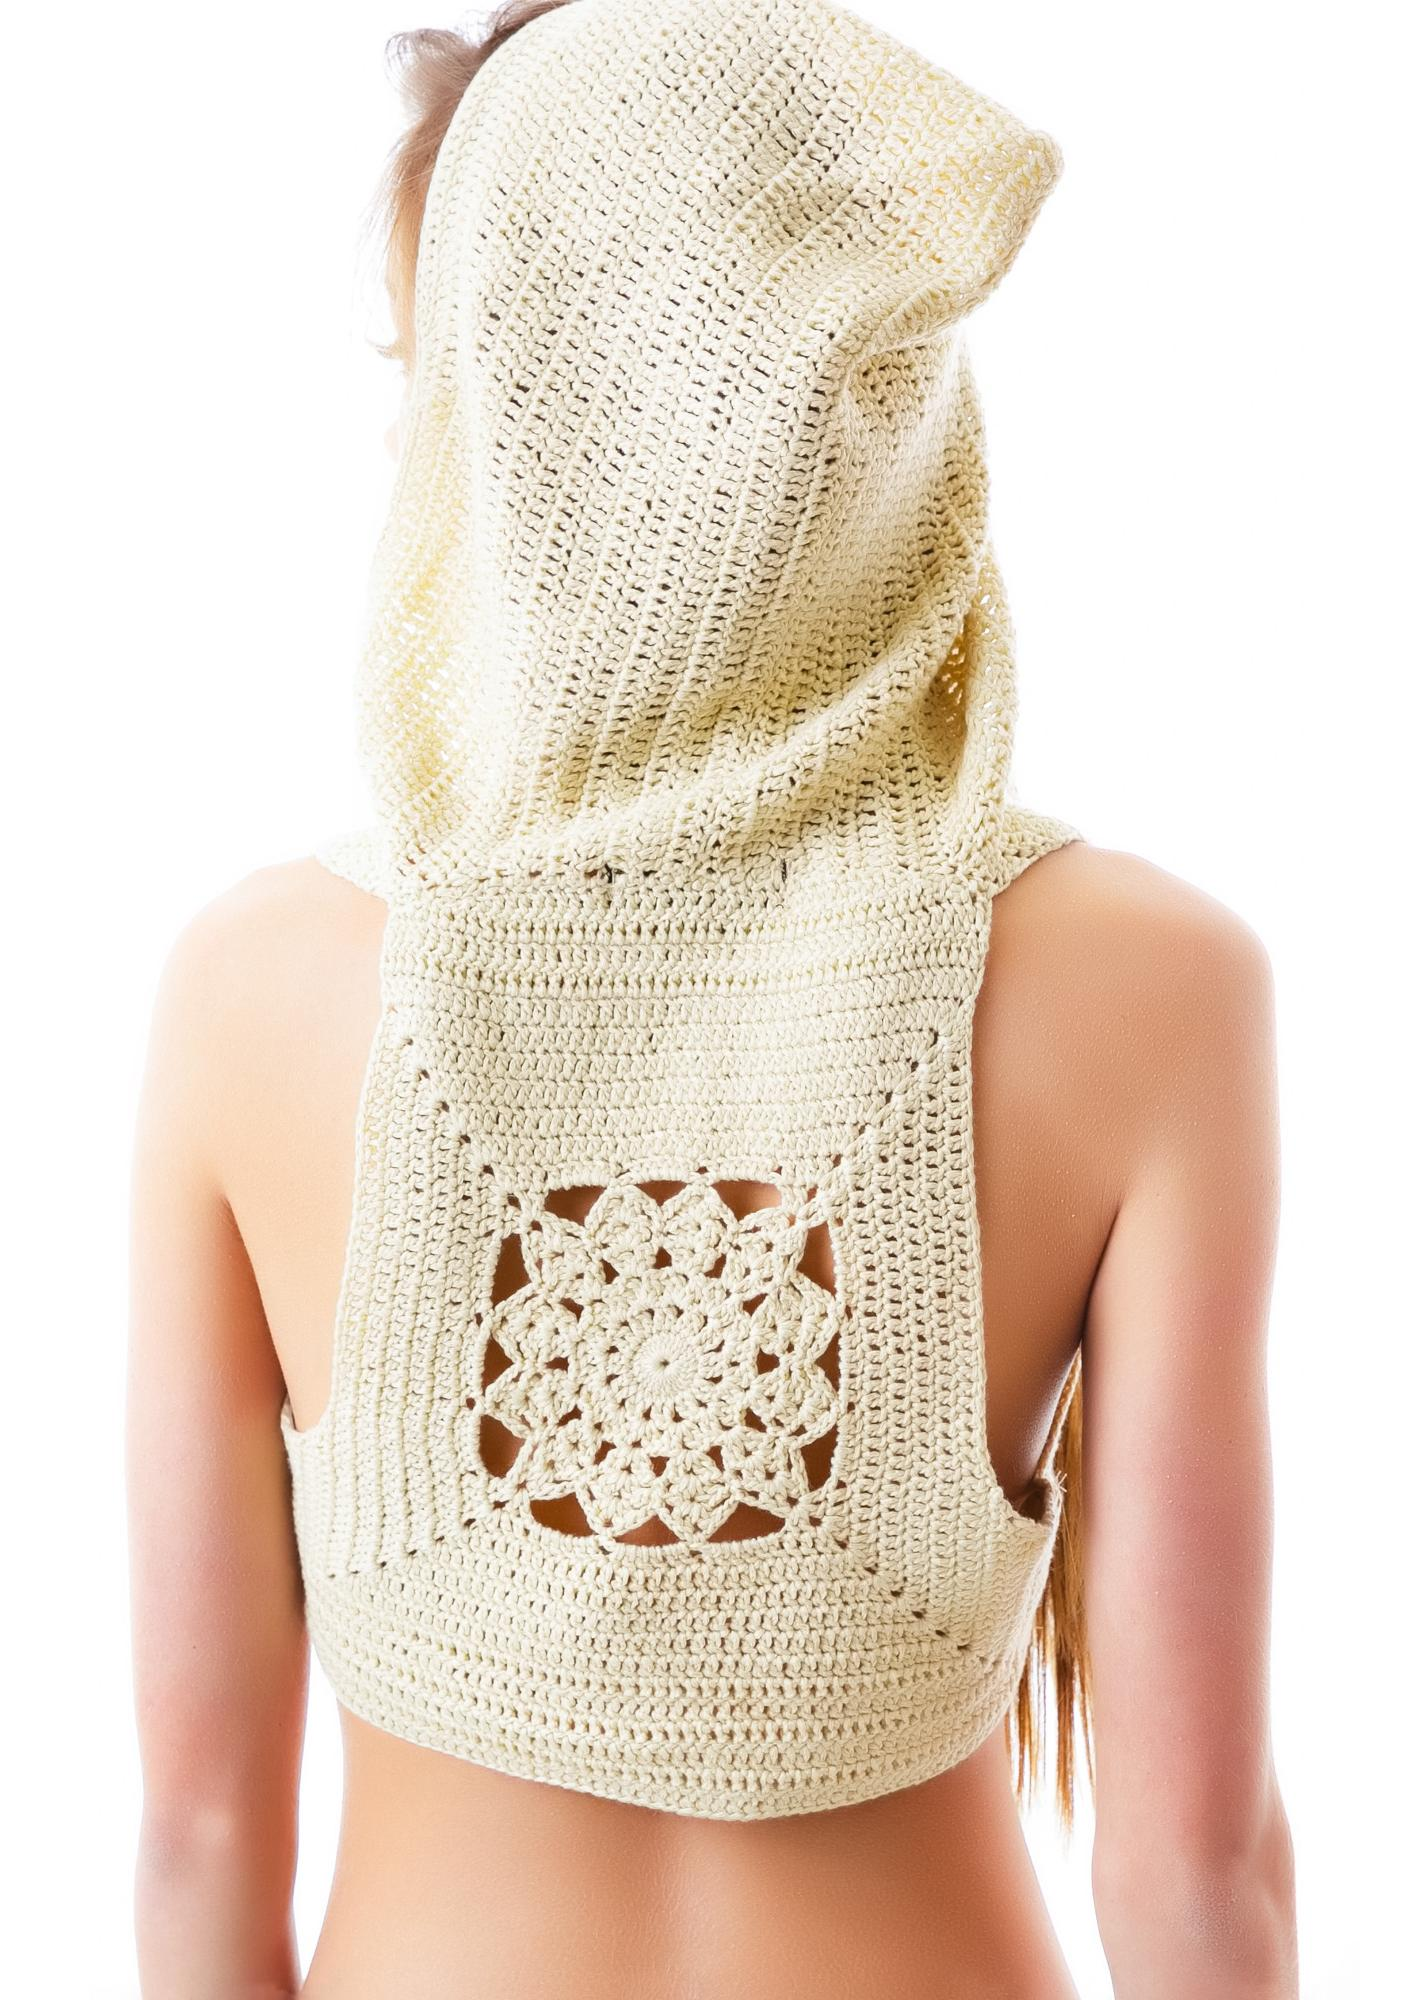 Free Love Crochet Hooded Bra